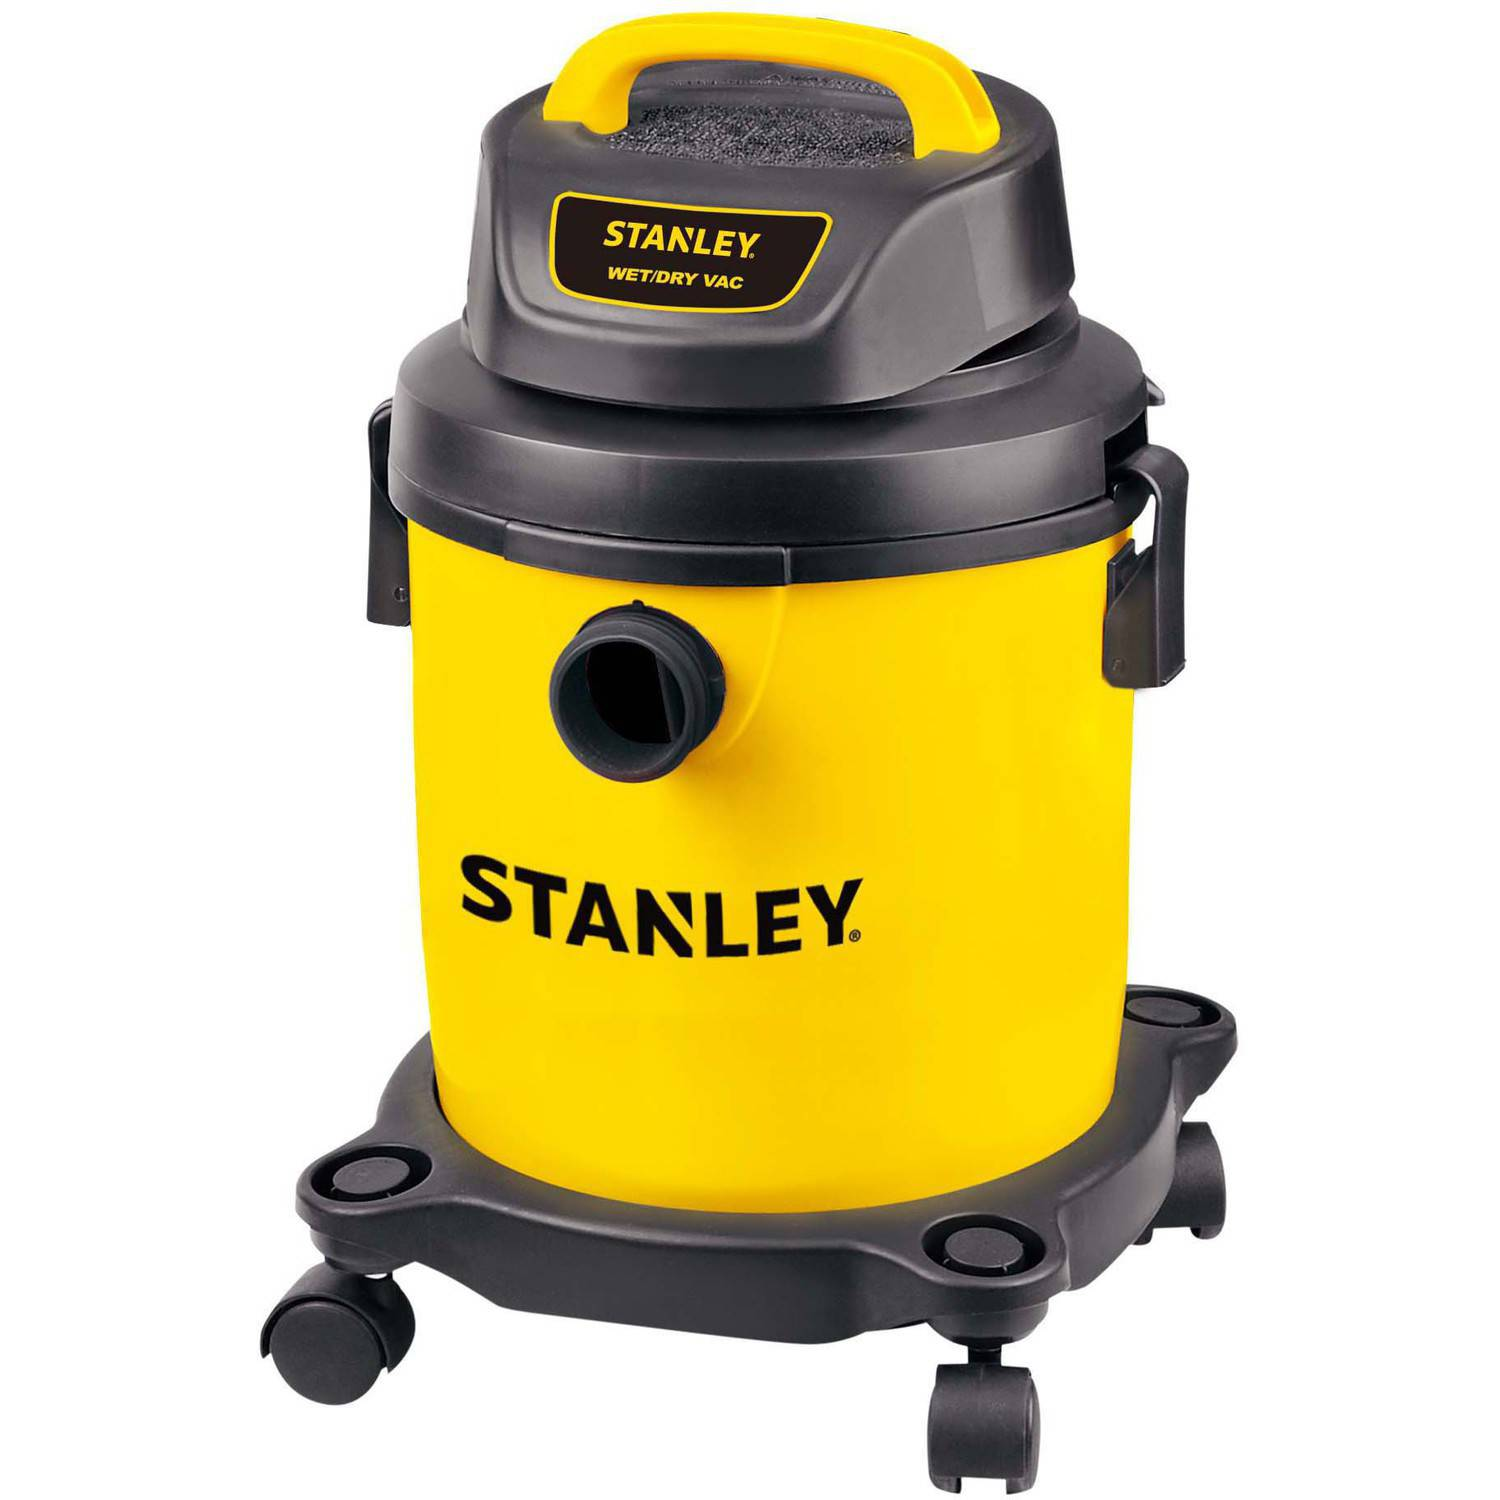 Stanley 2.5-gallon, 4-peak horse power, wet dry vacuum